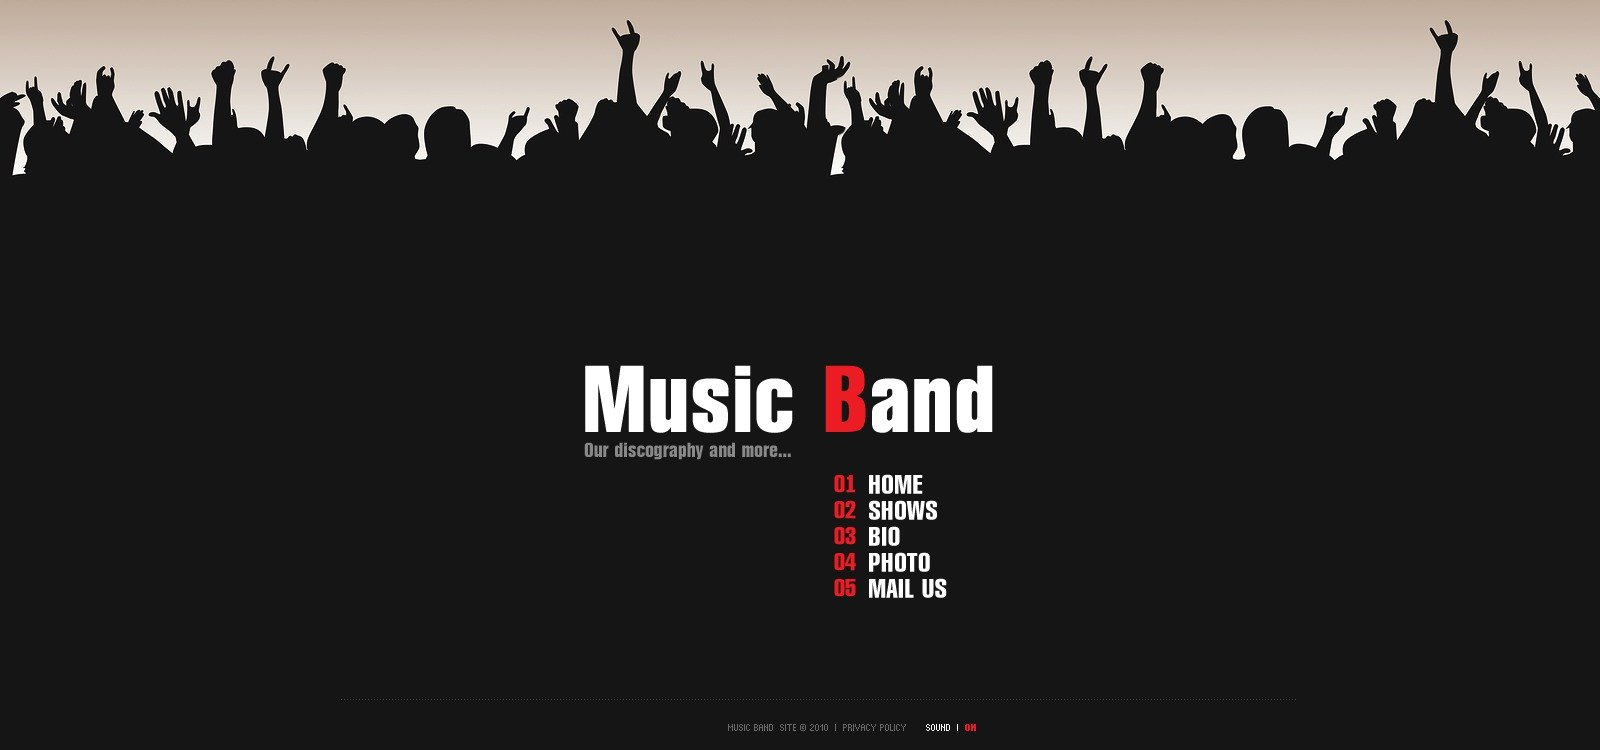 music-band-flash-template_28022-original.jpg